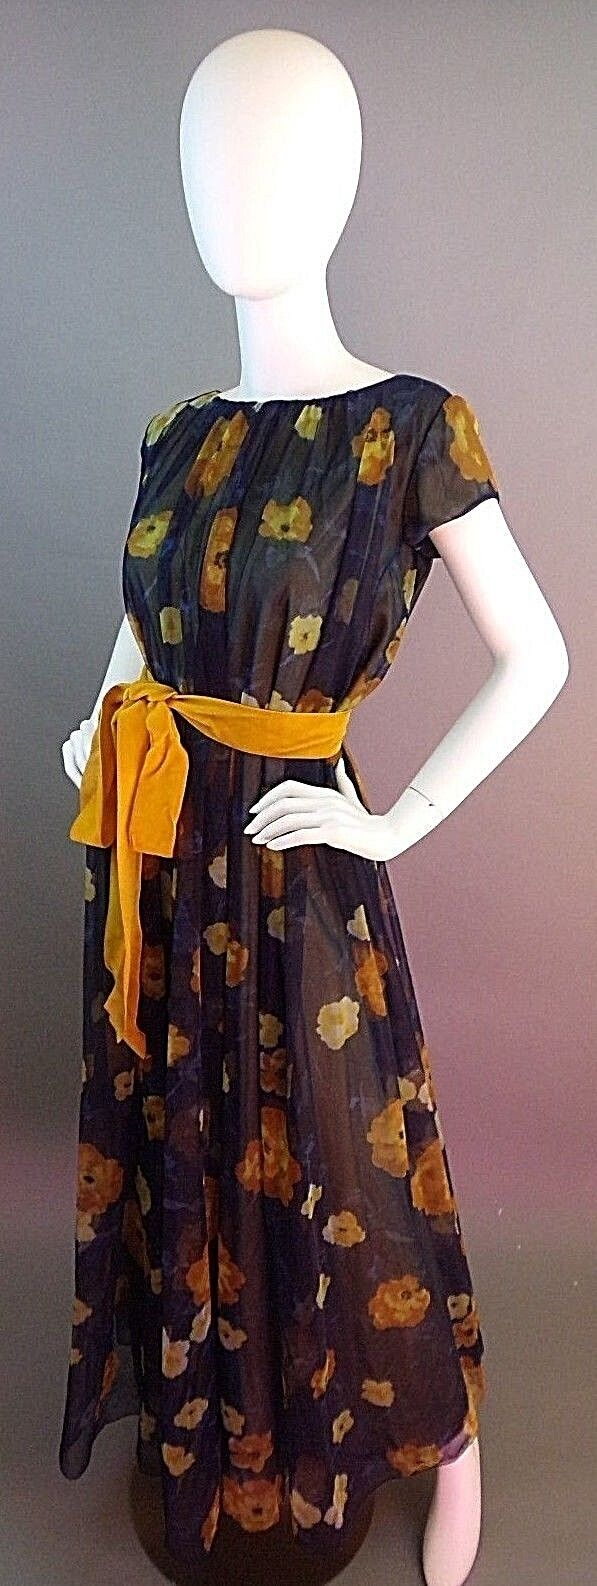 VINTAGE LUCIE ANN BEVERLY HILLS 1950s NIGHTGOWN - image 1